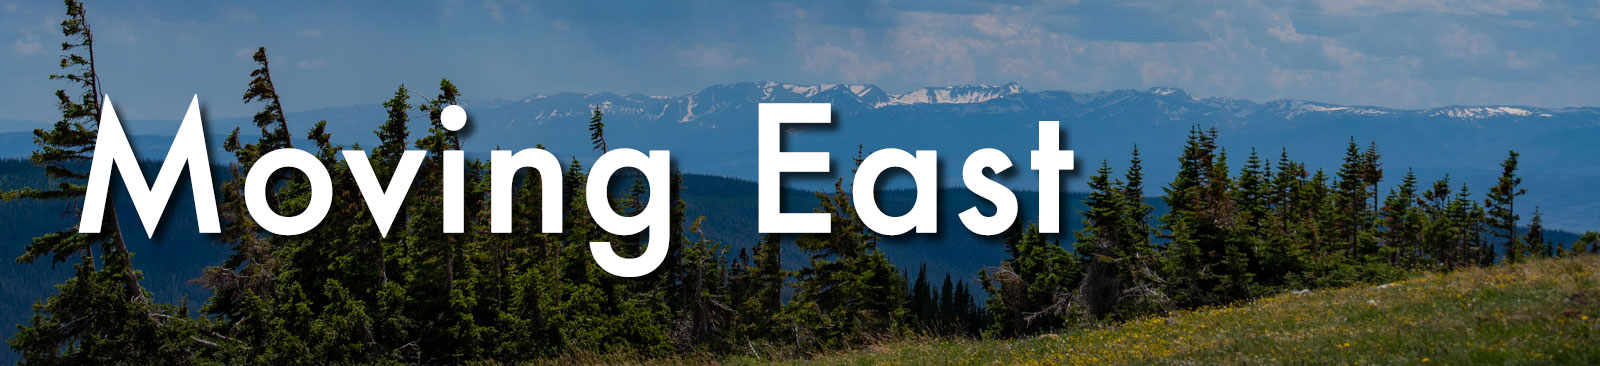 moving-east-header.jpg